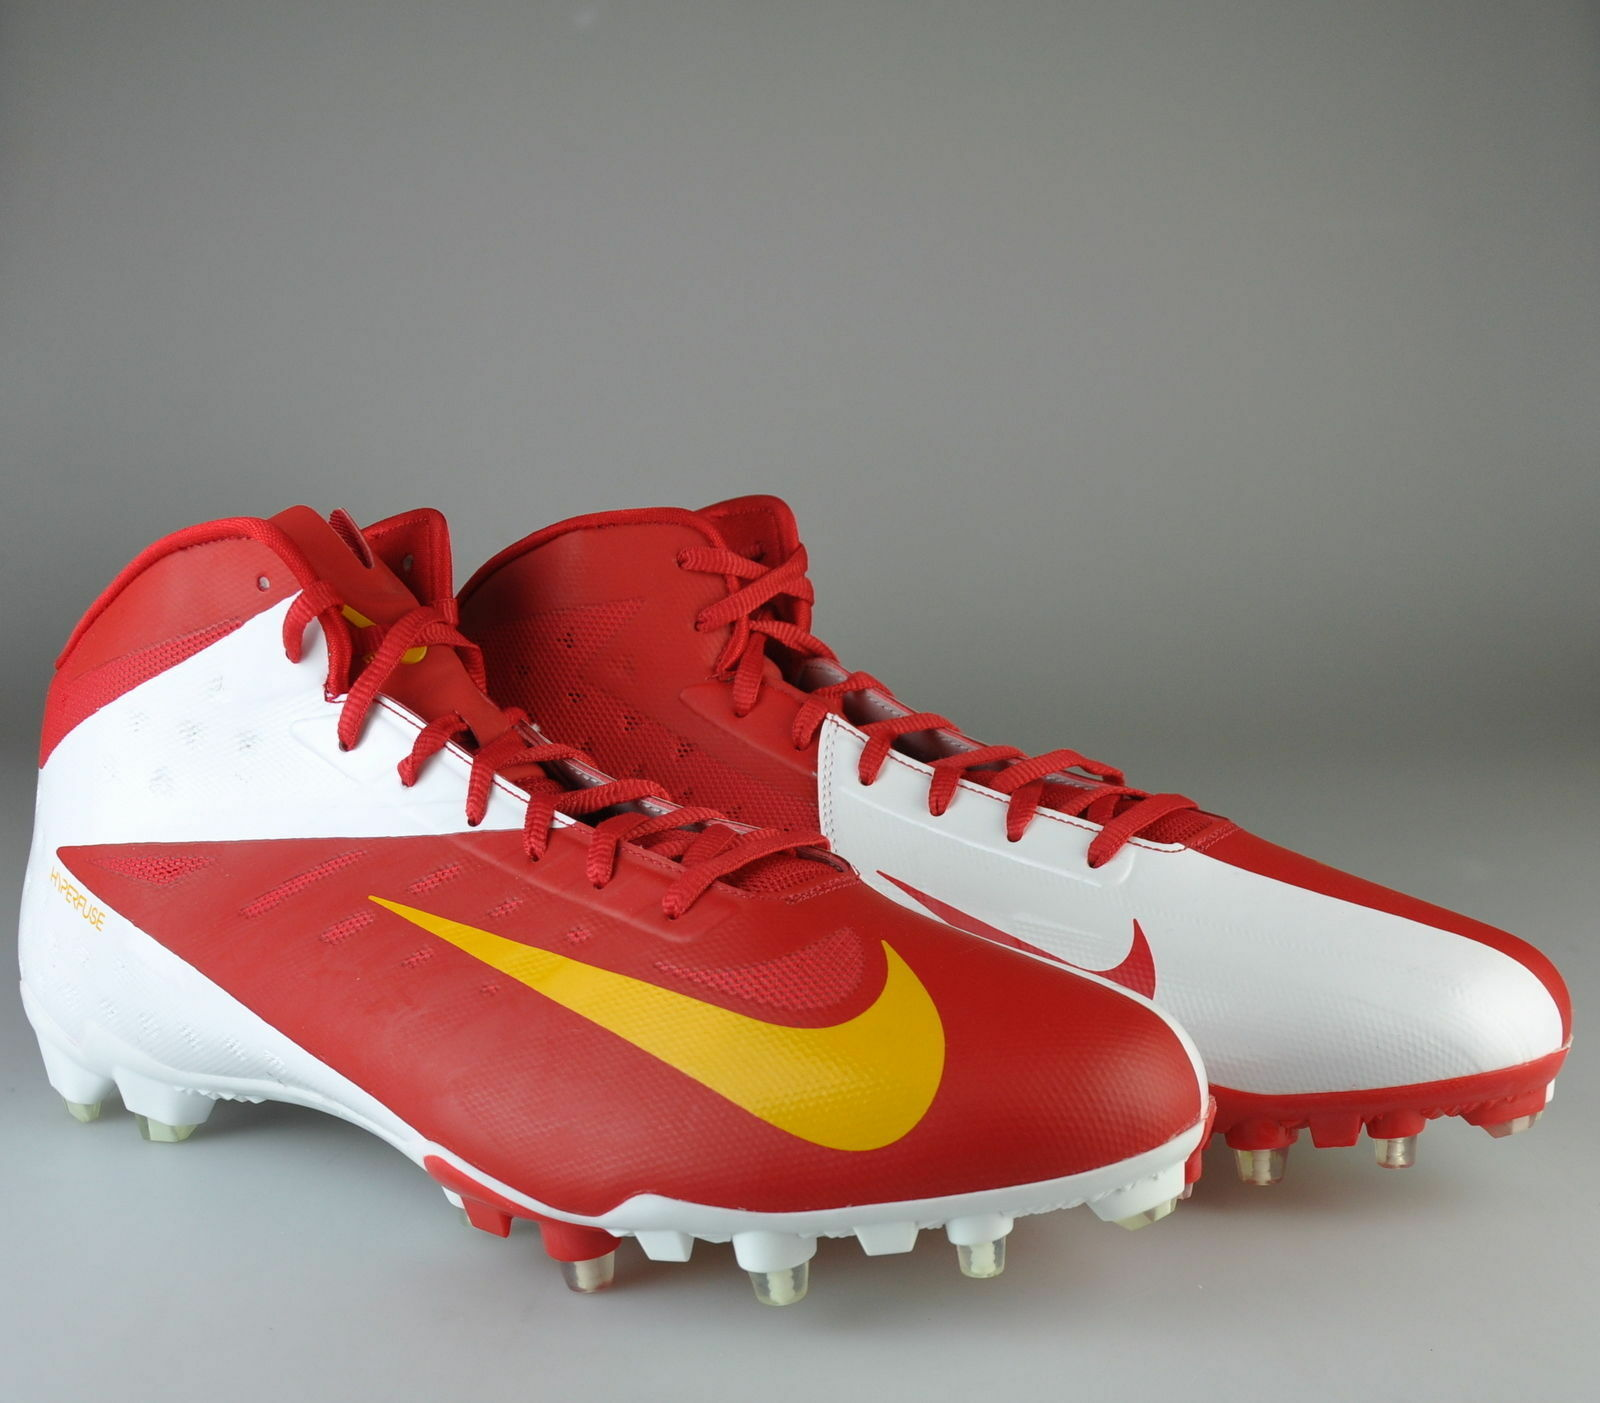 NEW NIKE VAPOR ELITE 3/4 FOOTBALL 534771-616 CLEATS SIZE 15 RED KC CHIEFS  Special limited time